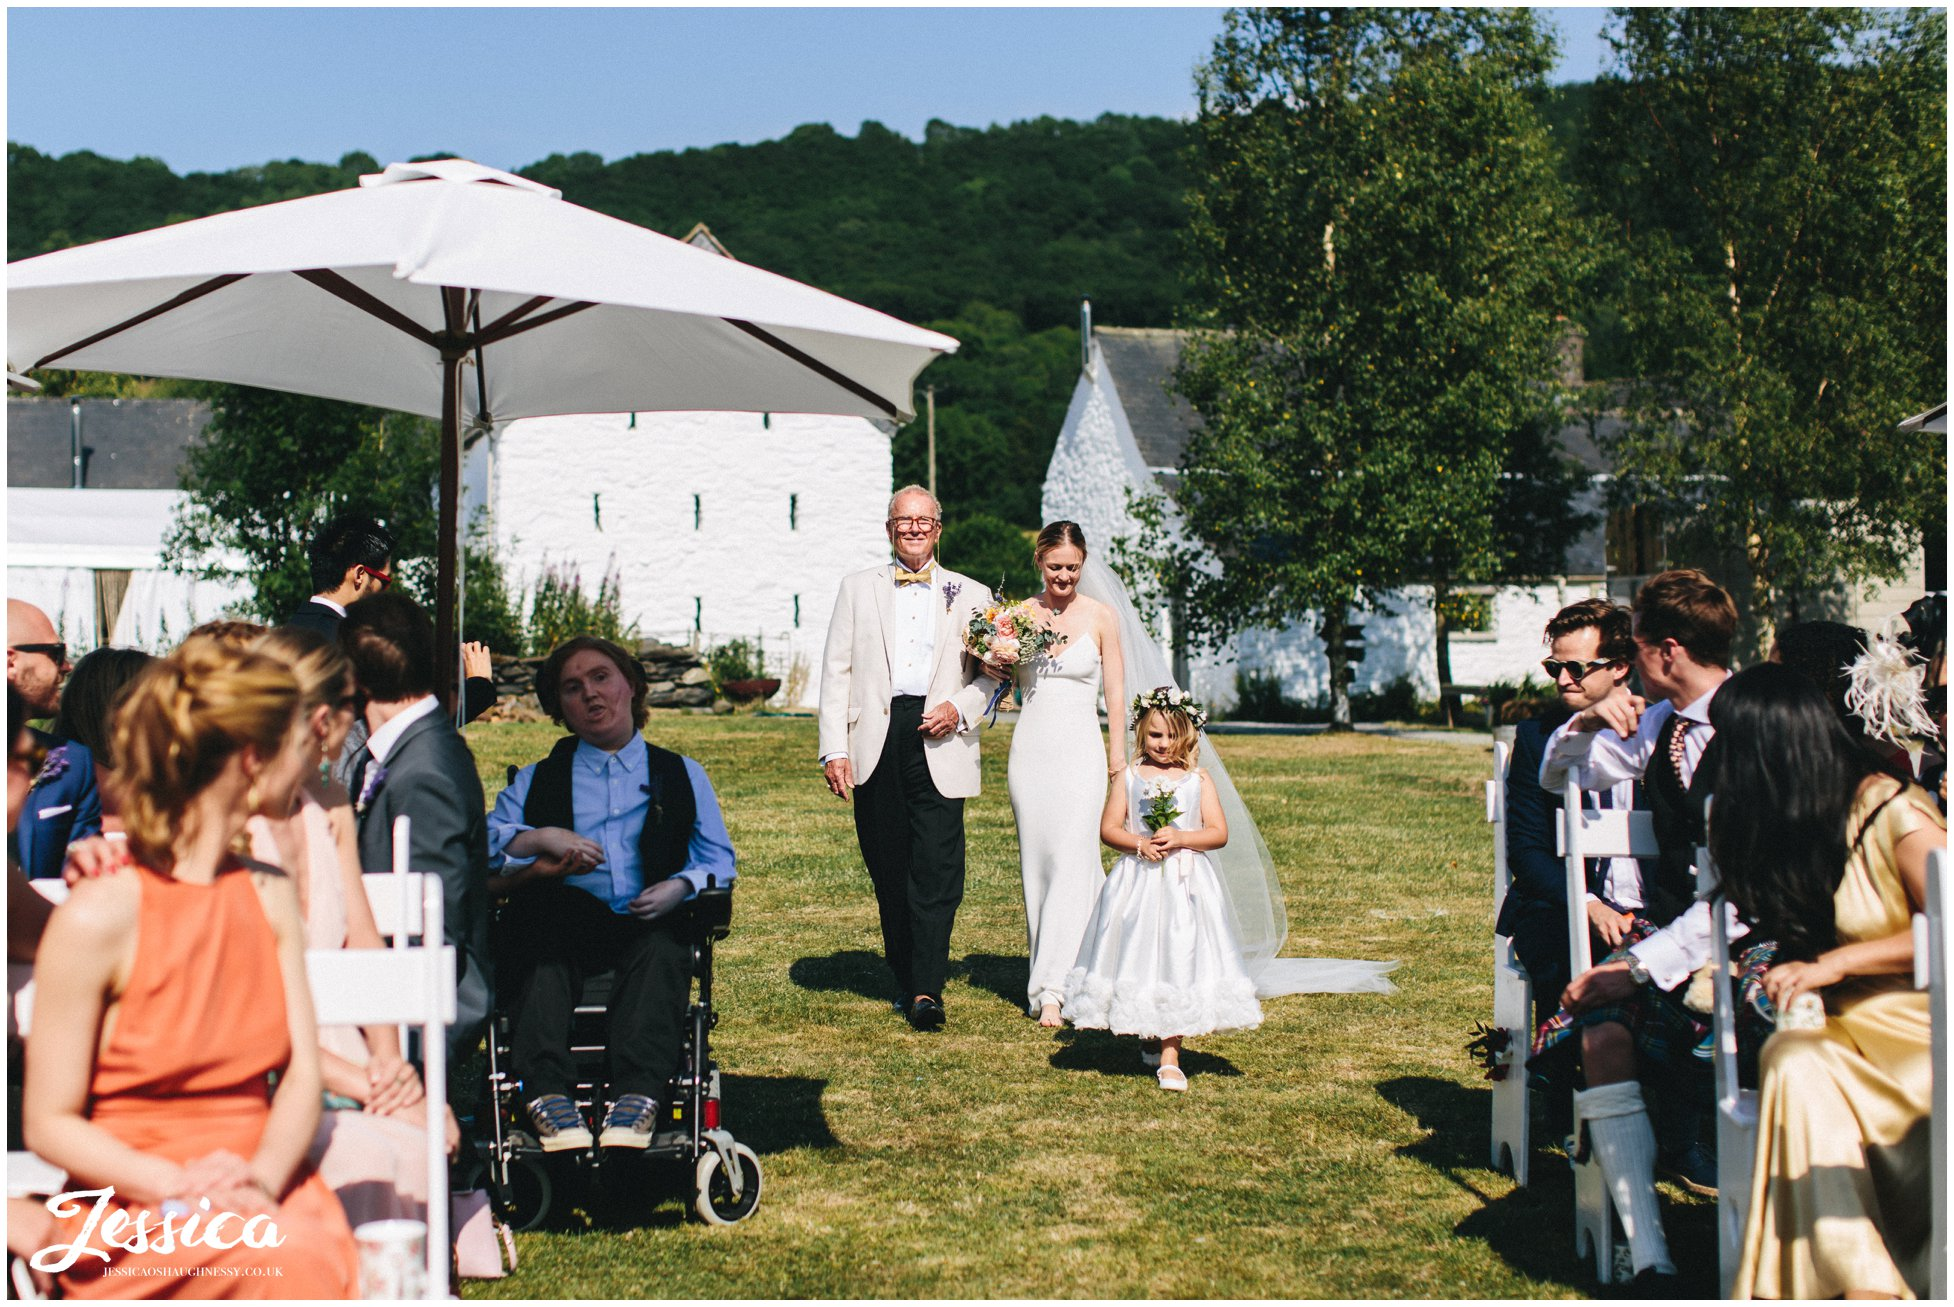 the bride walks with her father down the aisle